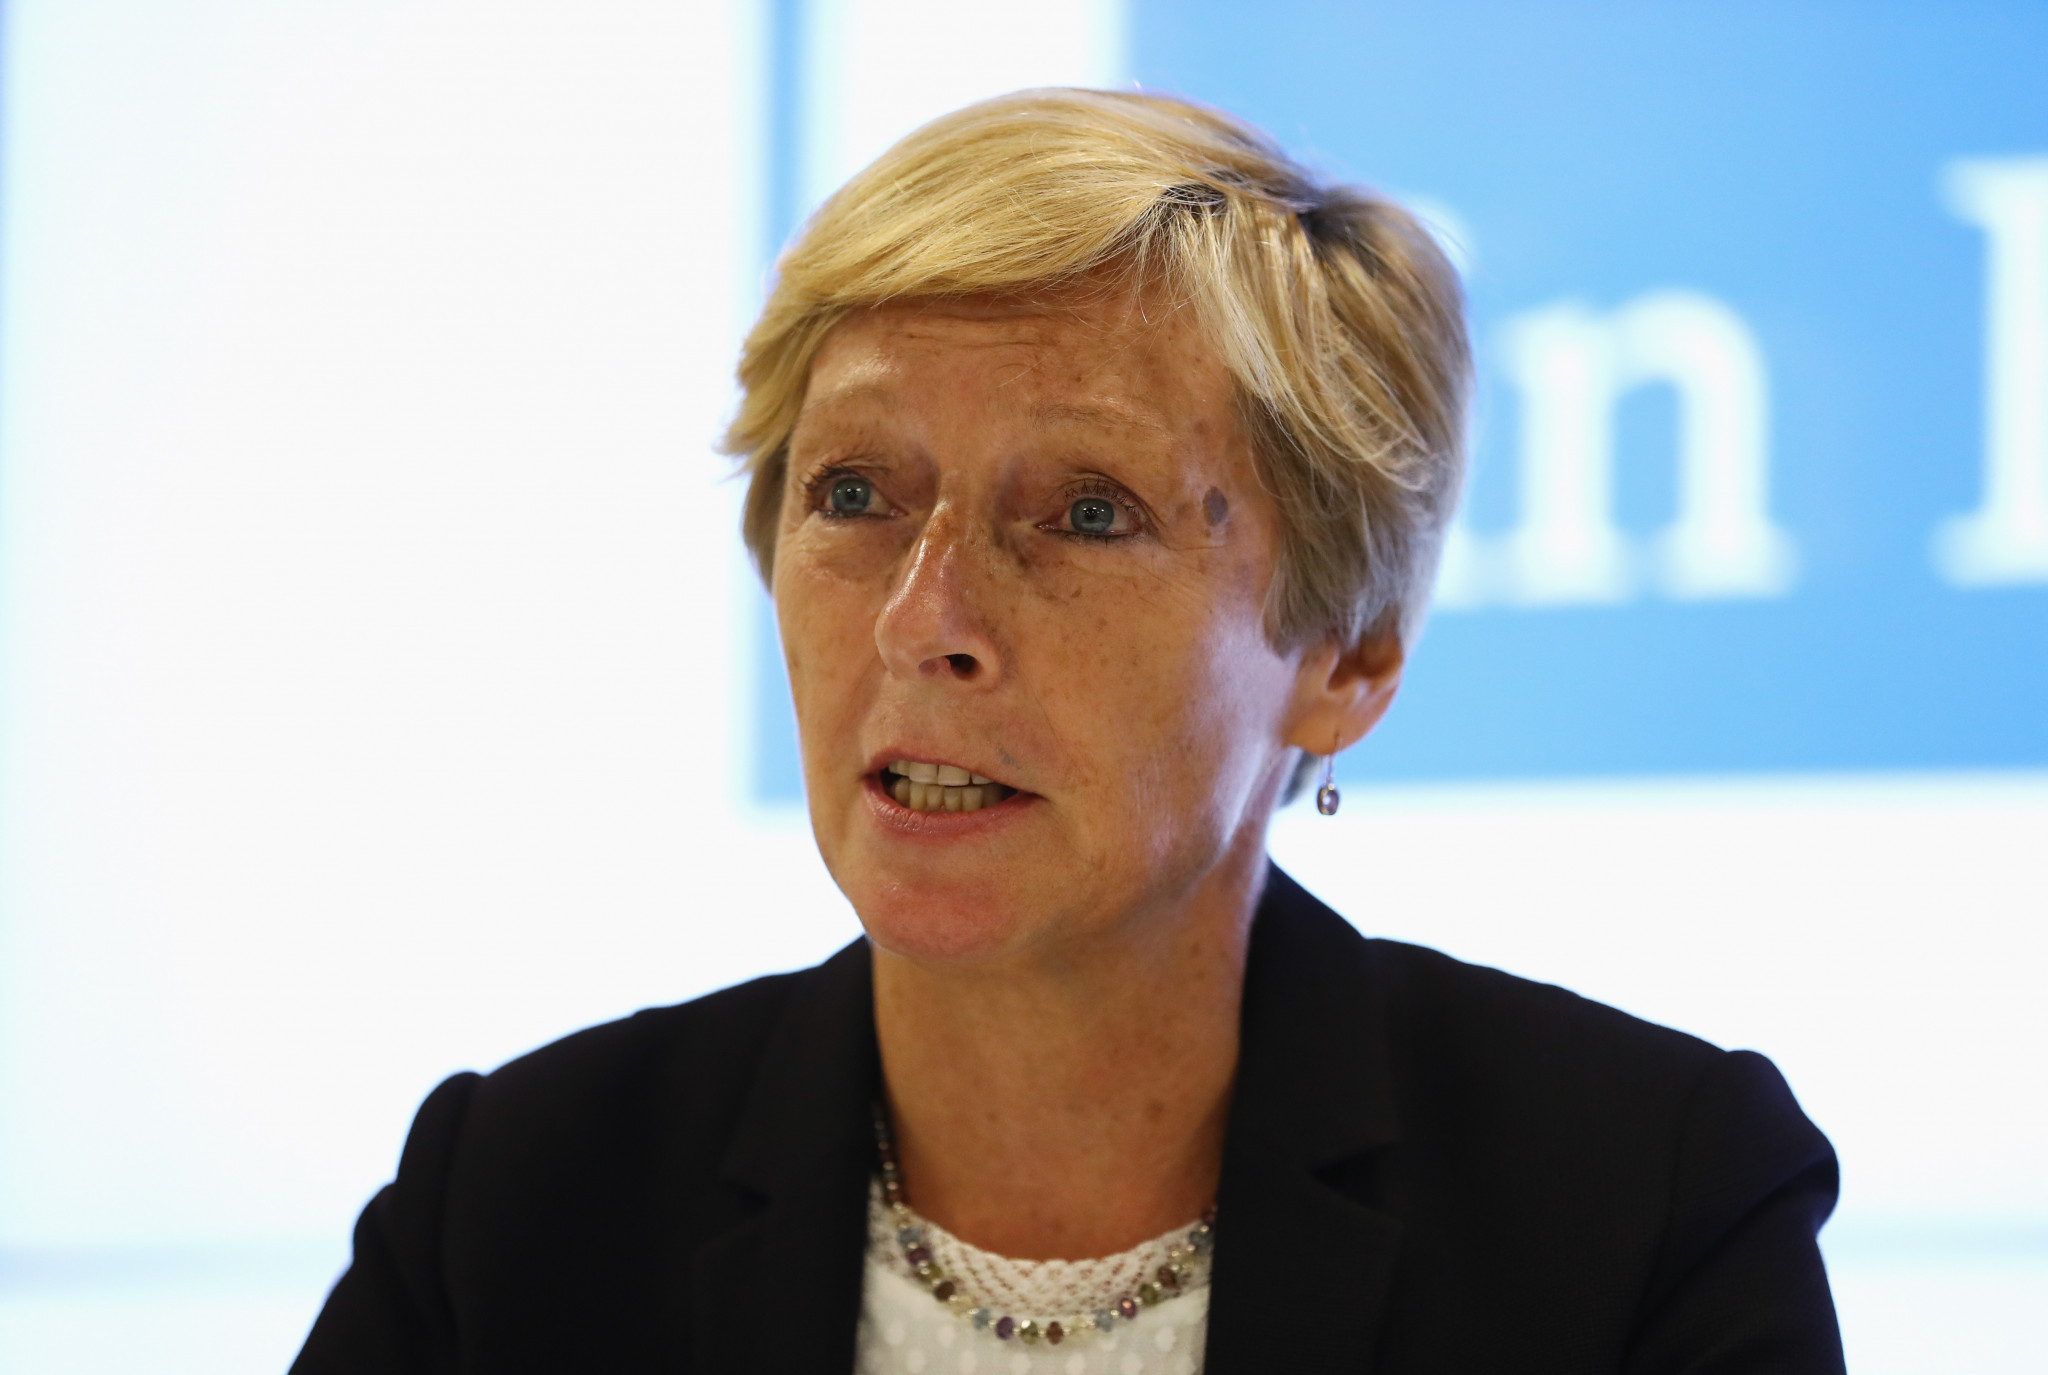 UK Sport chief executive Nicholl to stand for President role at International Netball Federation